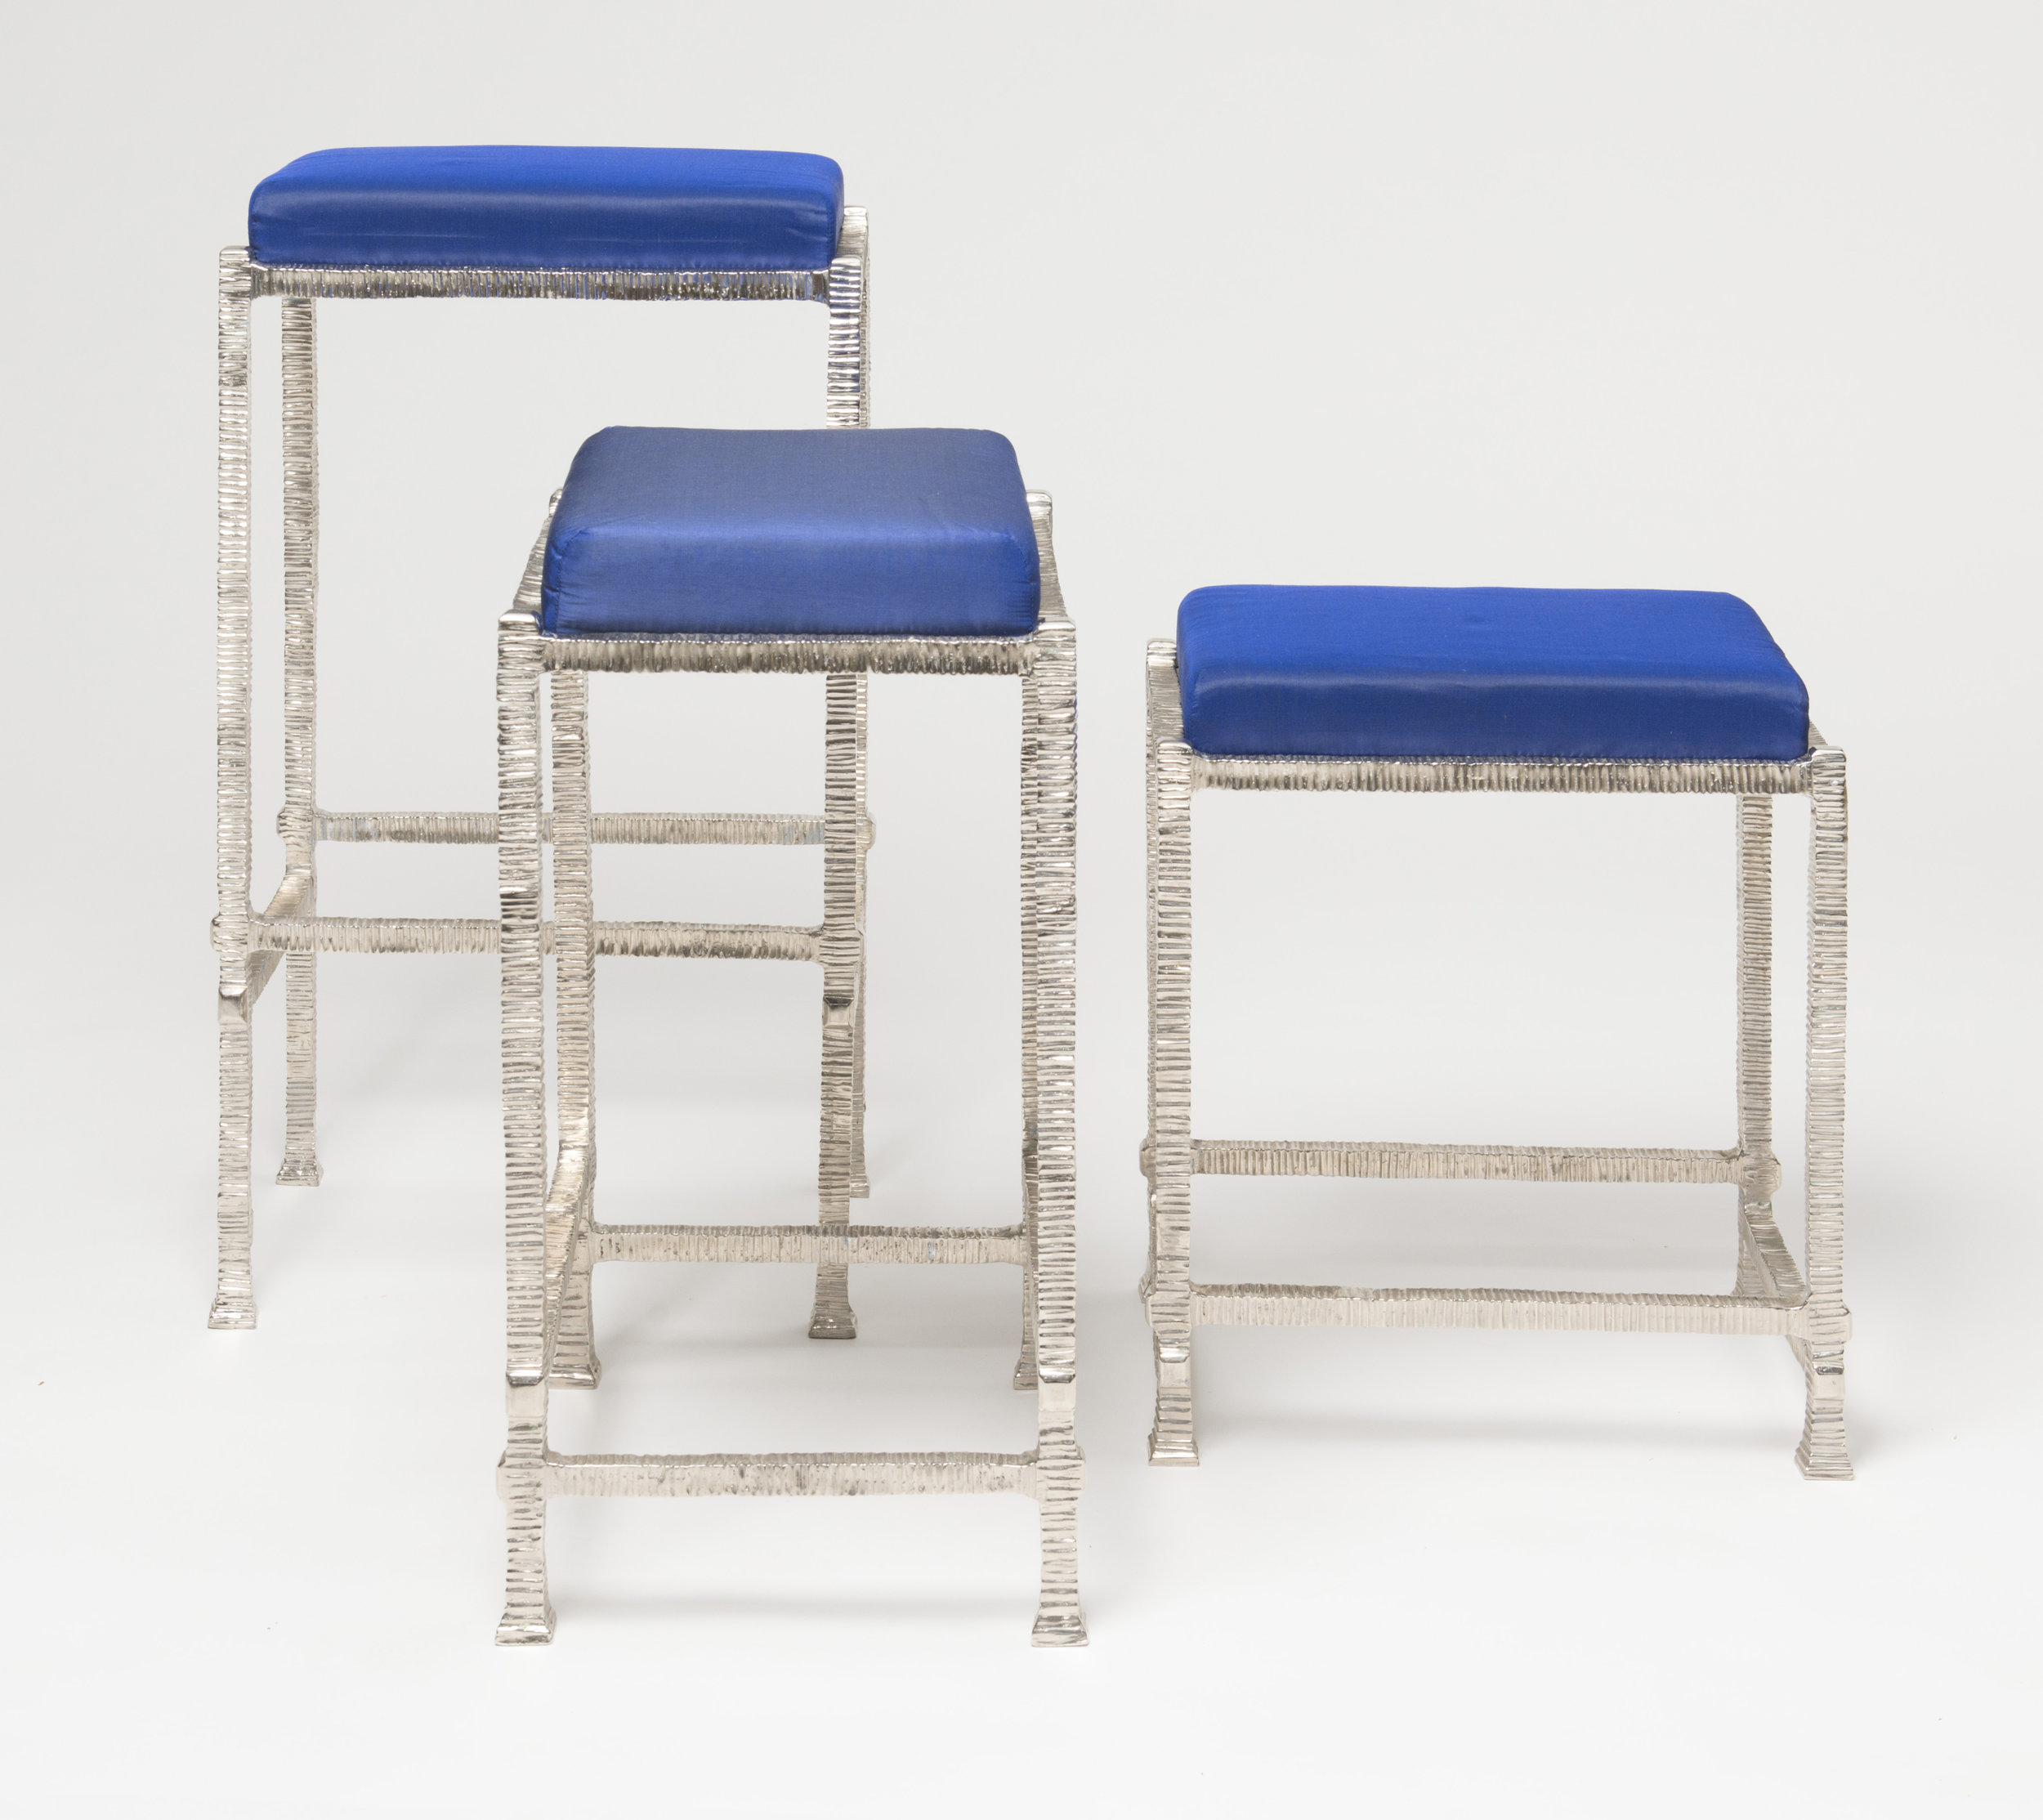 group_forged_stools.jpg